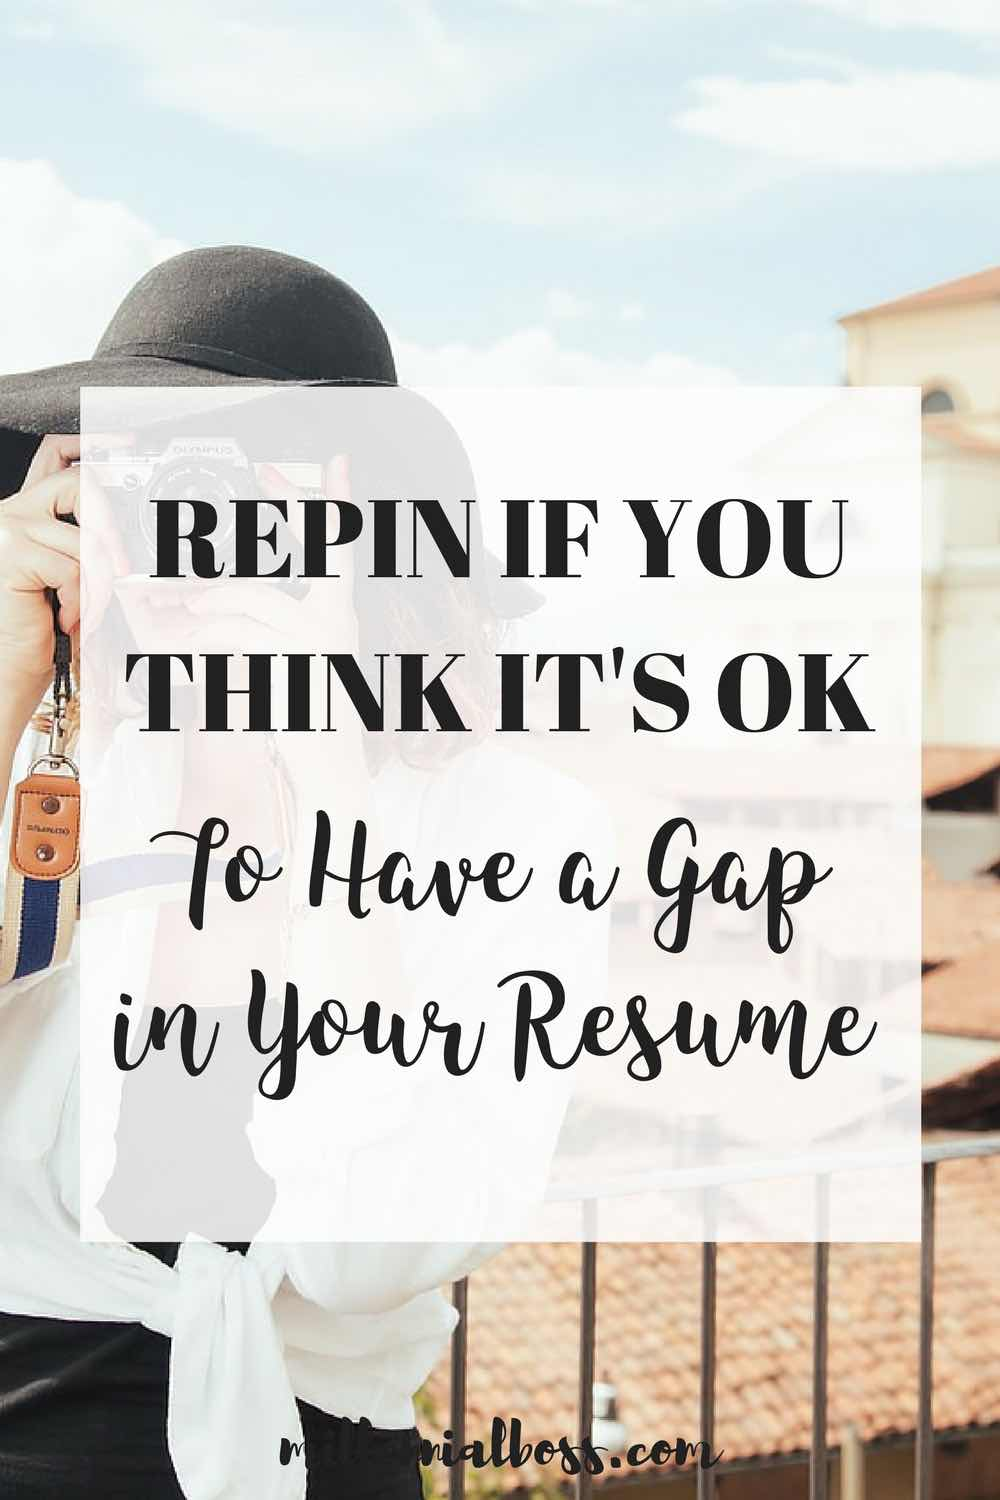 Take time off work | take time off school | gap year school | gap year college | gap on resume | take time off to find yourself